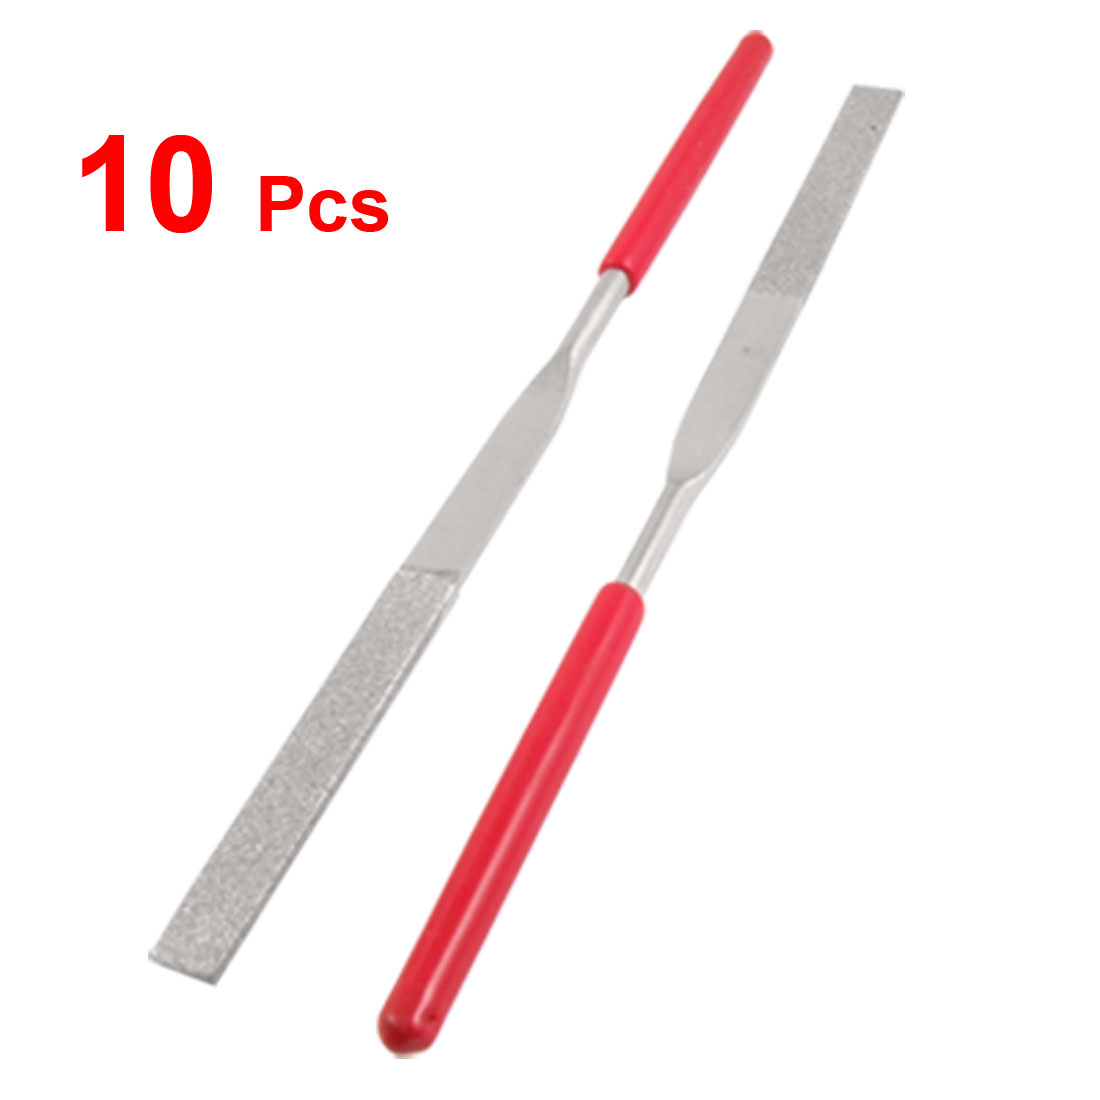 10 Pcs 4mm x 160mm Stone Glass Metal Flat Diamond Needle Files